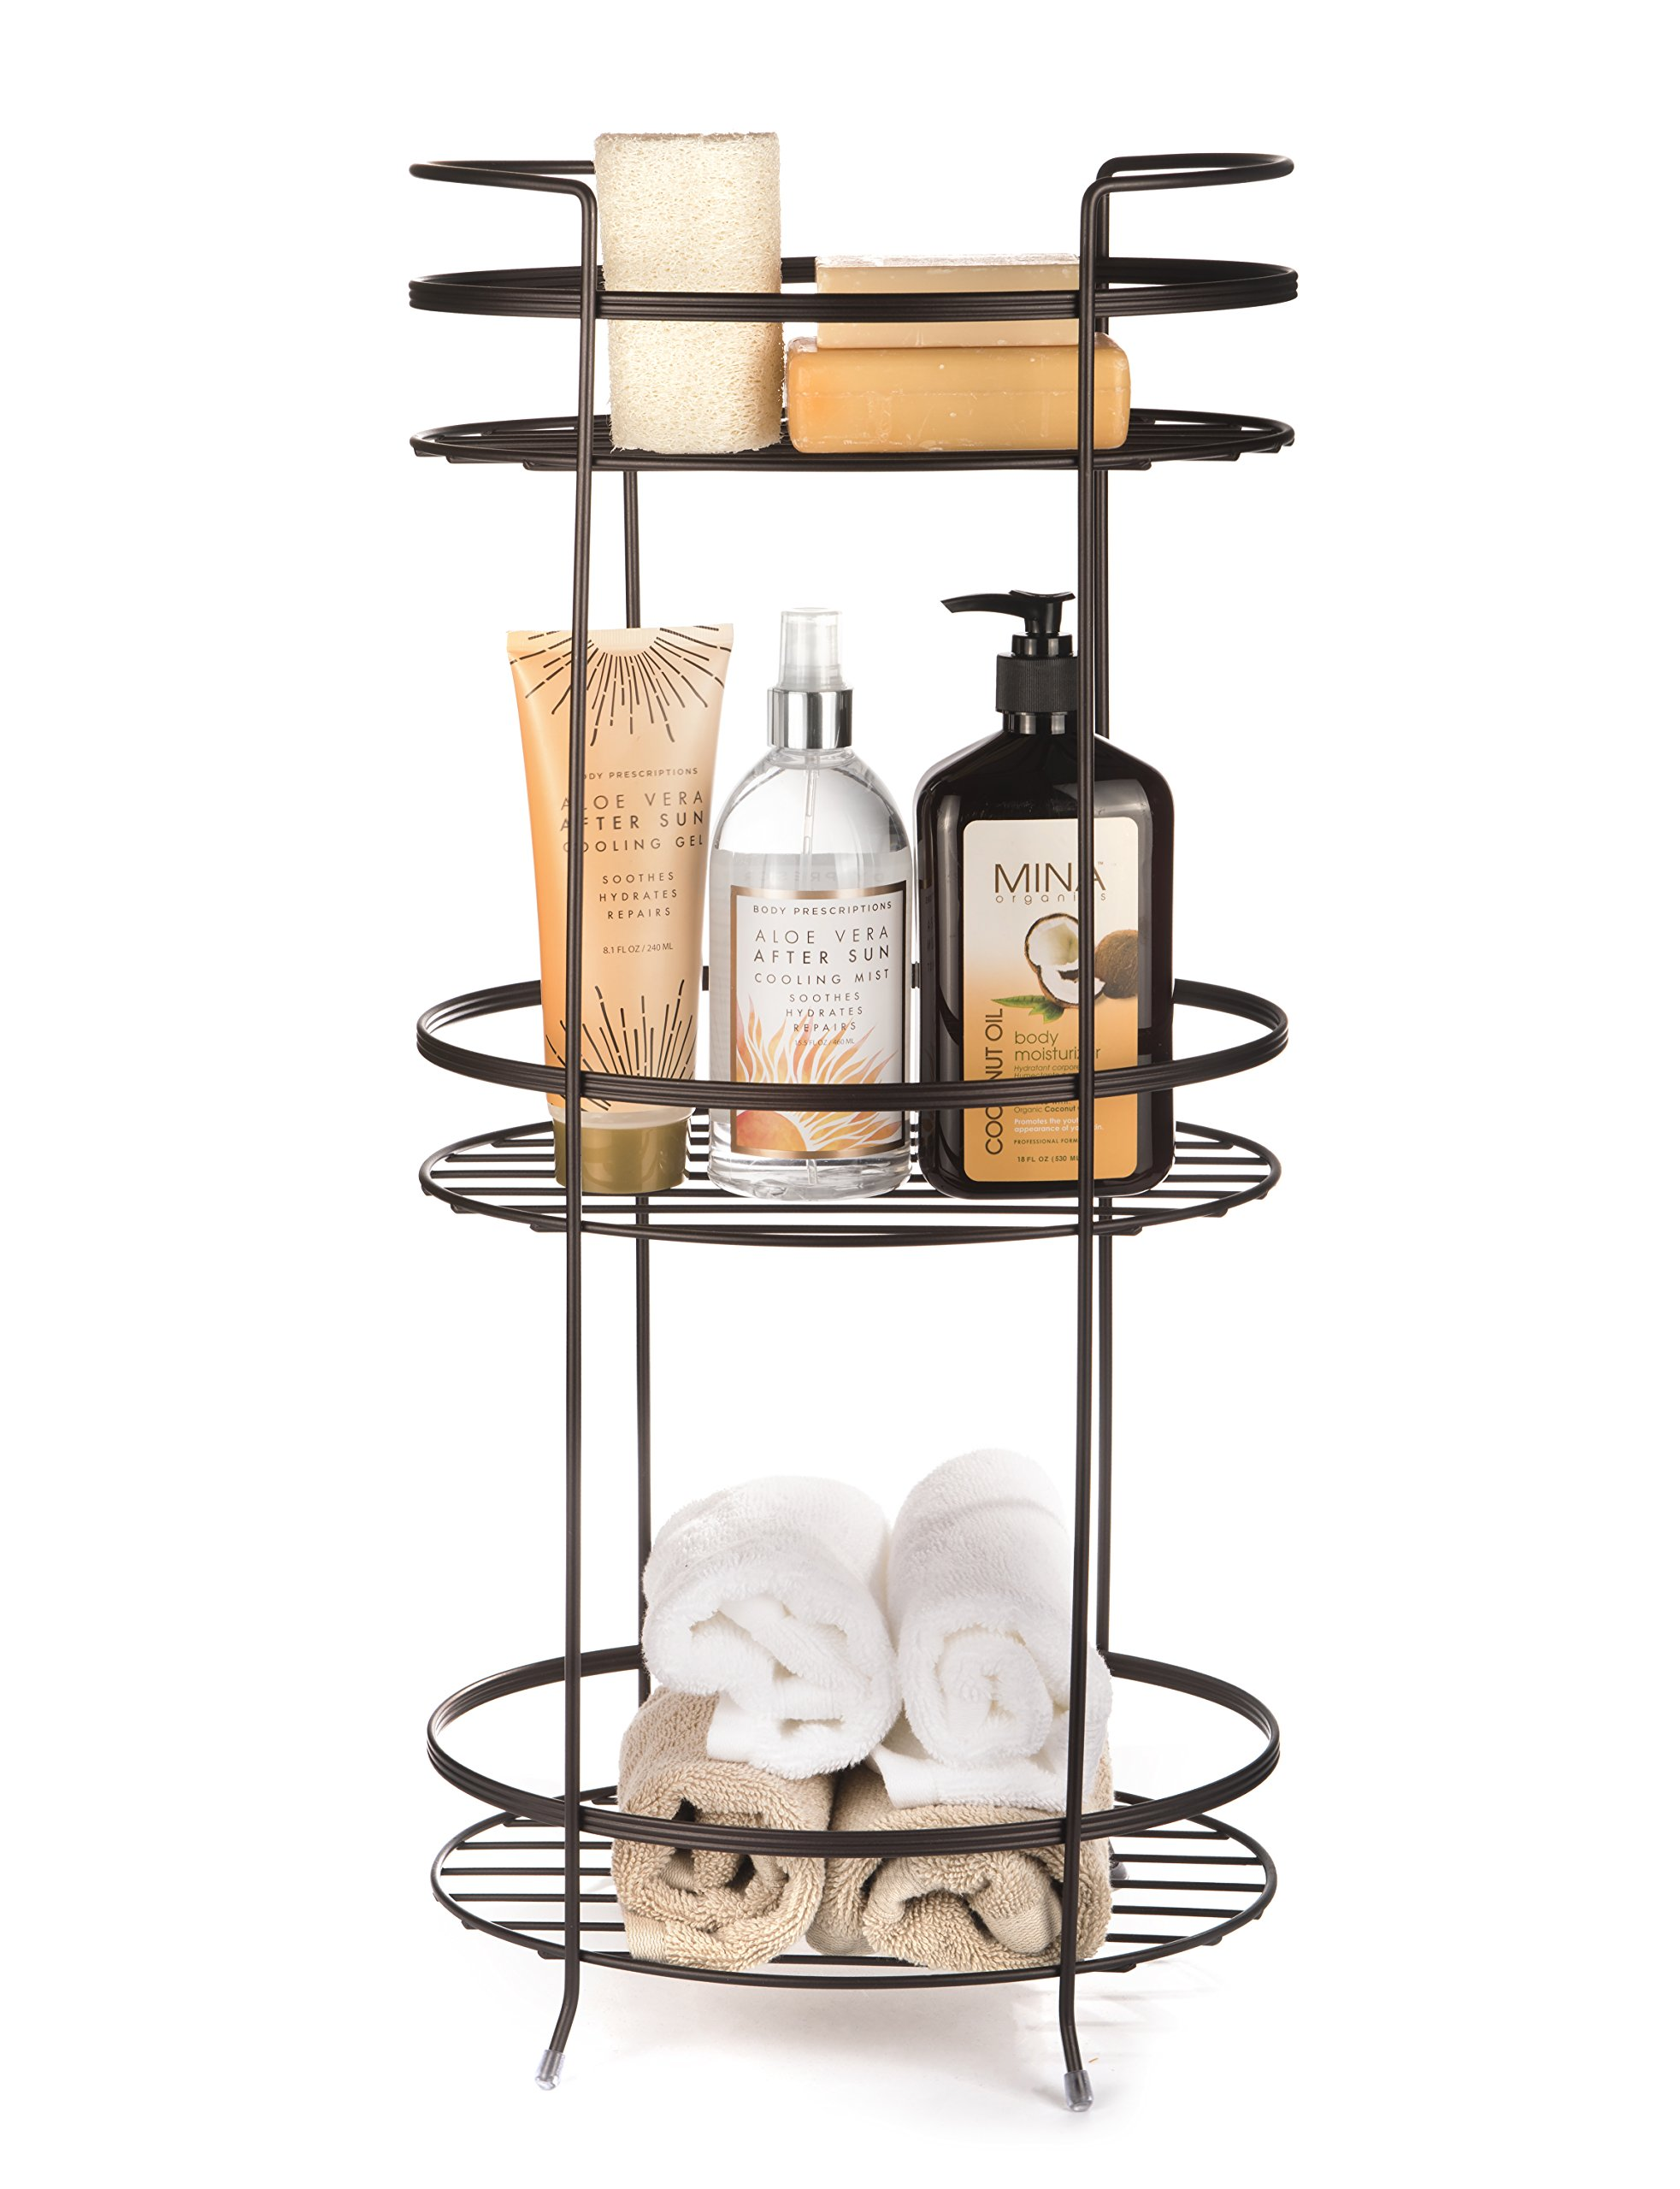 AMG and Enchante Accessories Free Standing Bathroom Spa Tower Storage Caddy, FC100005 ORB, Oil Rubbed Bronze